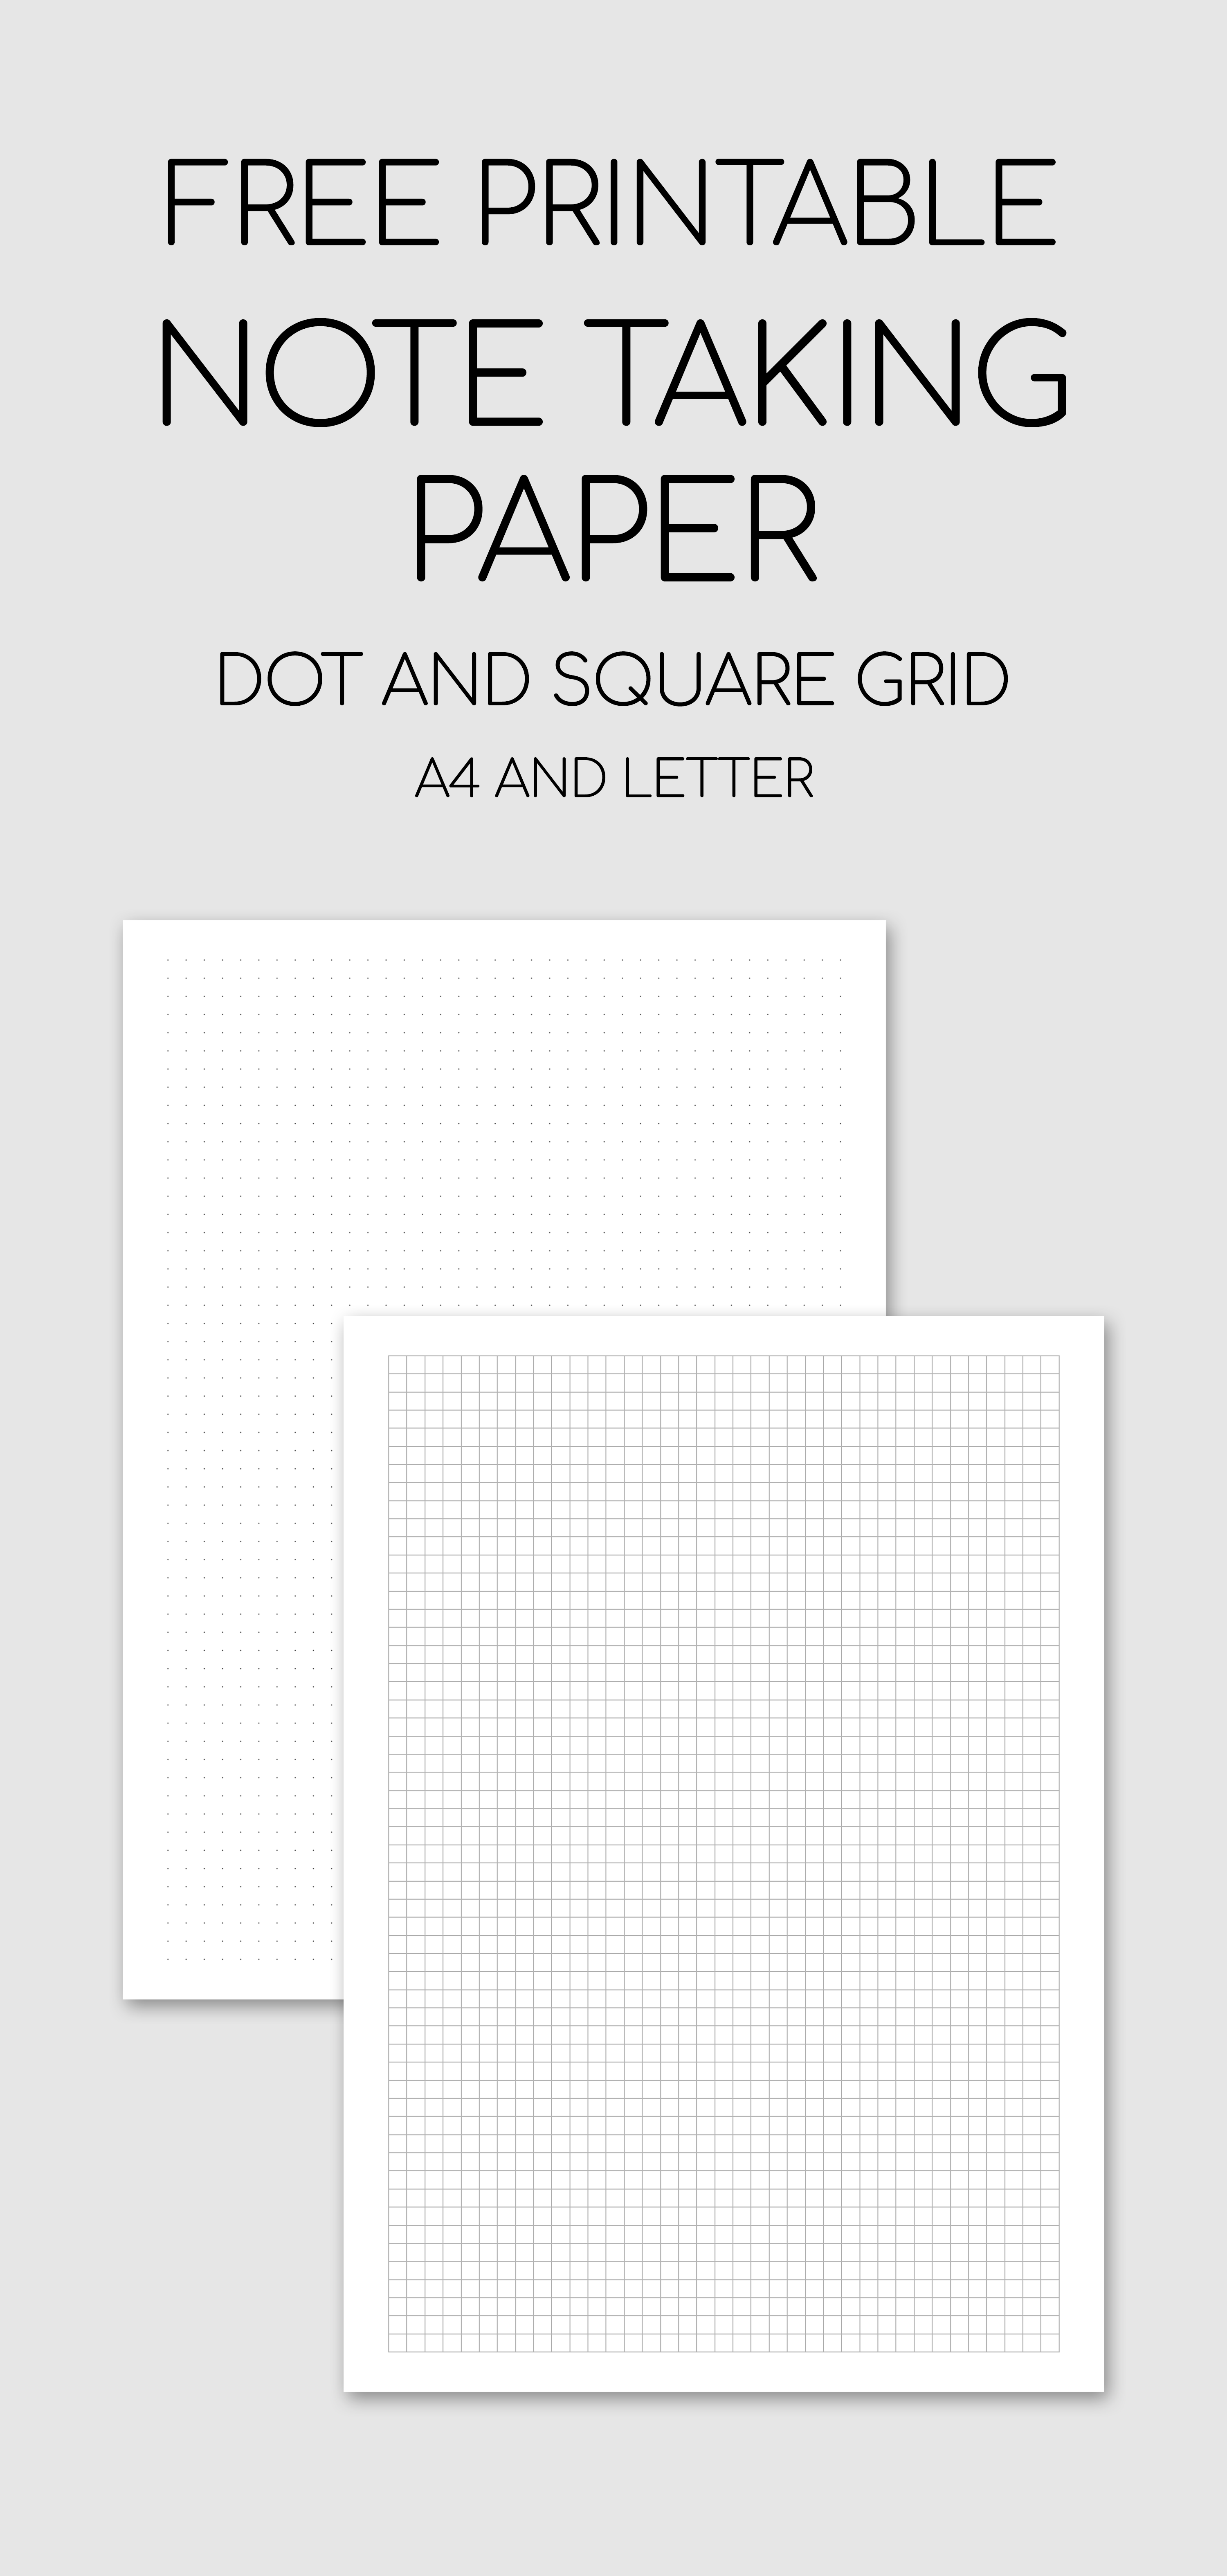 Free Printable Note Taking Paper Dot And Square Grid